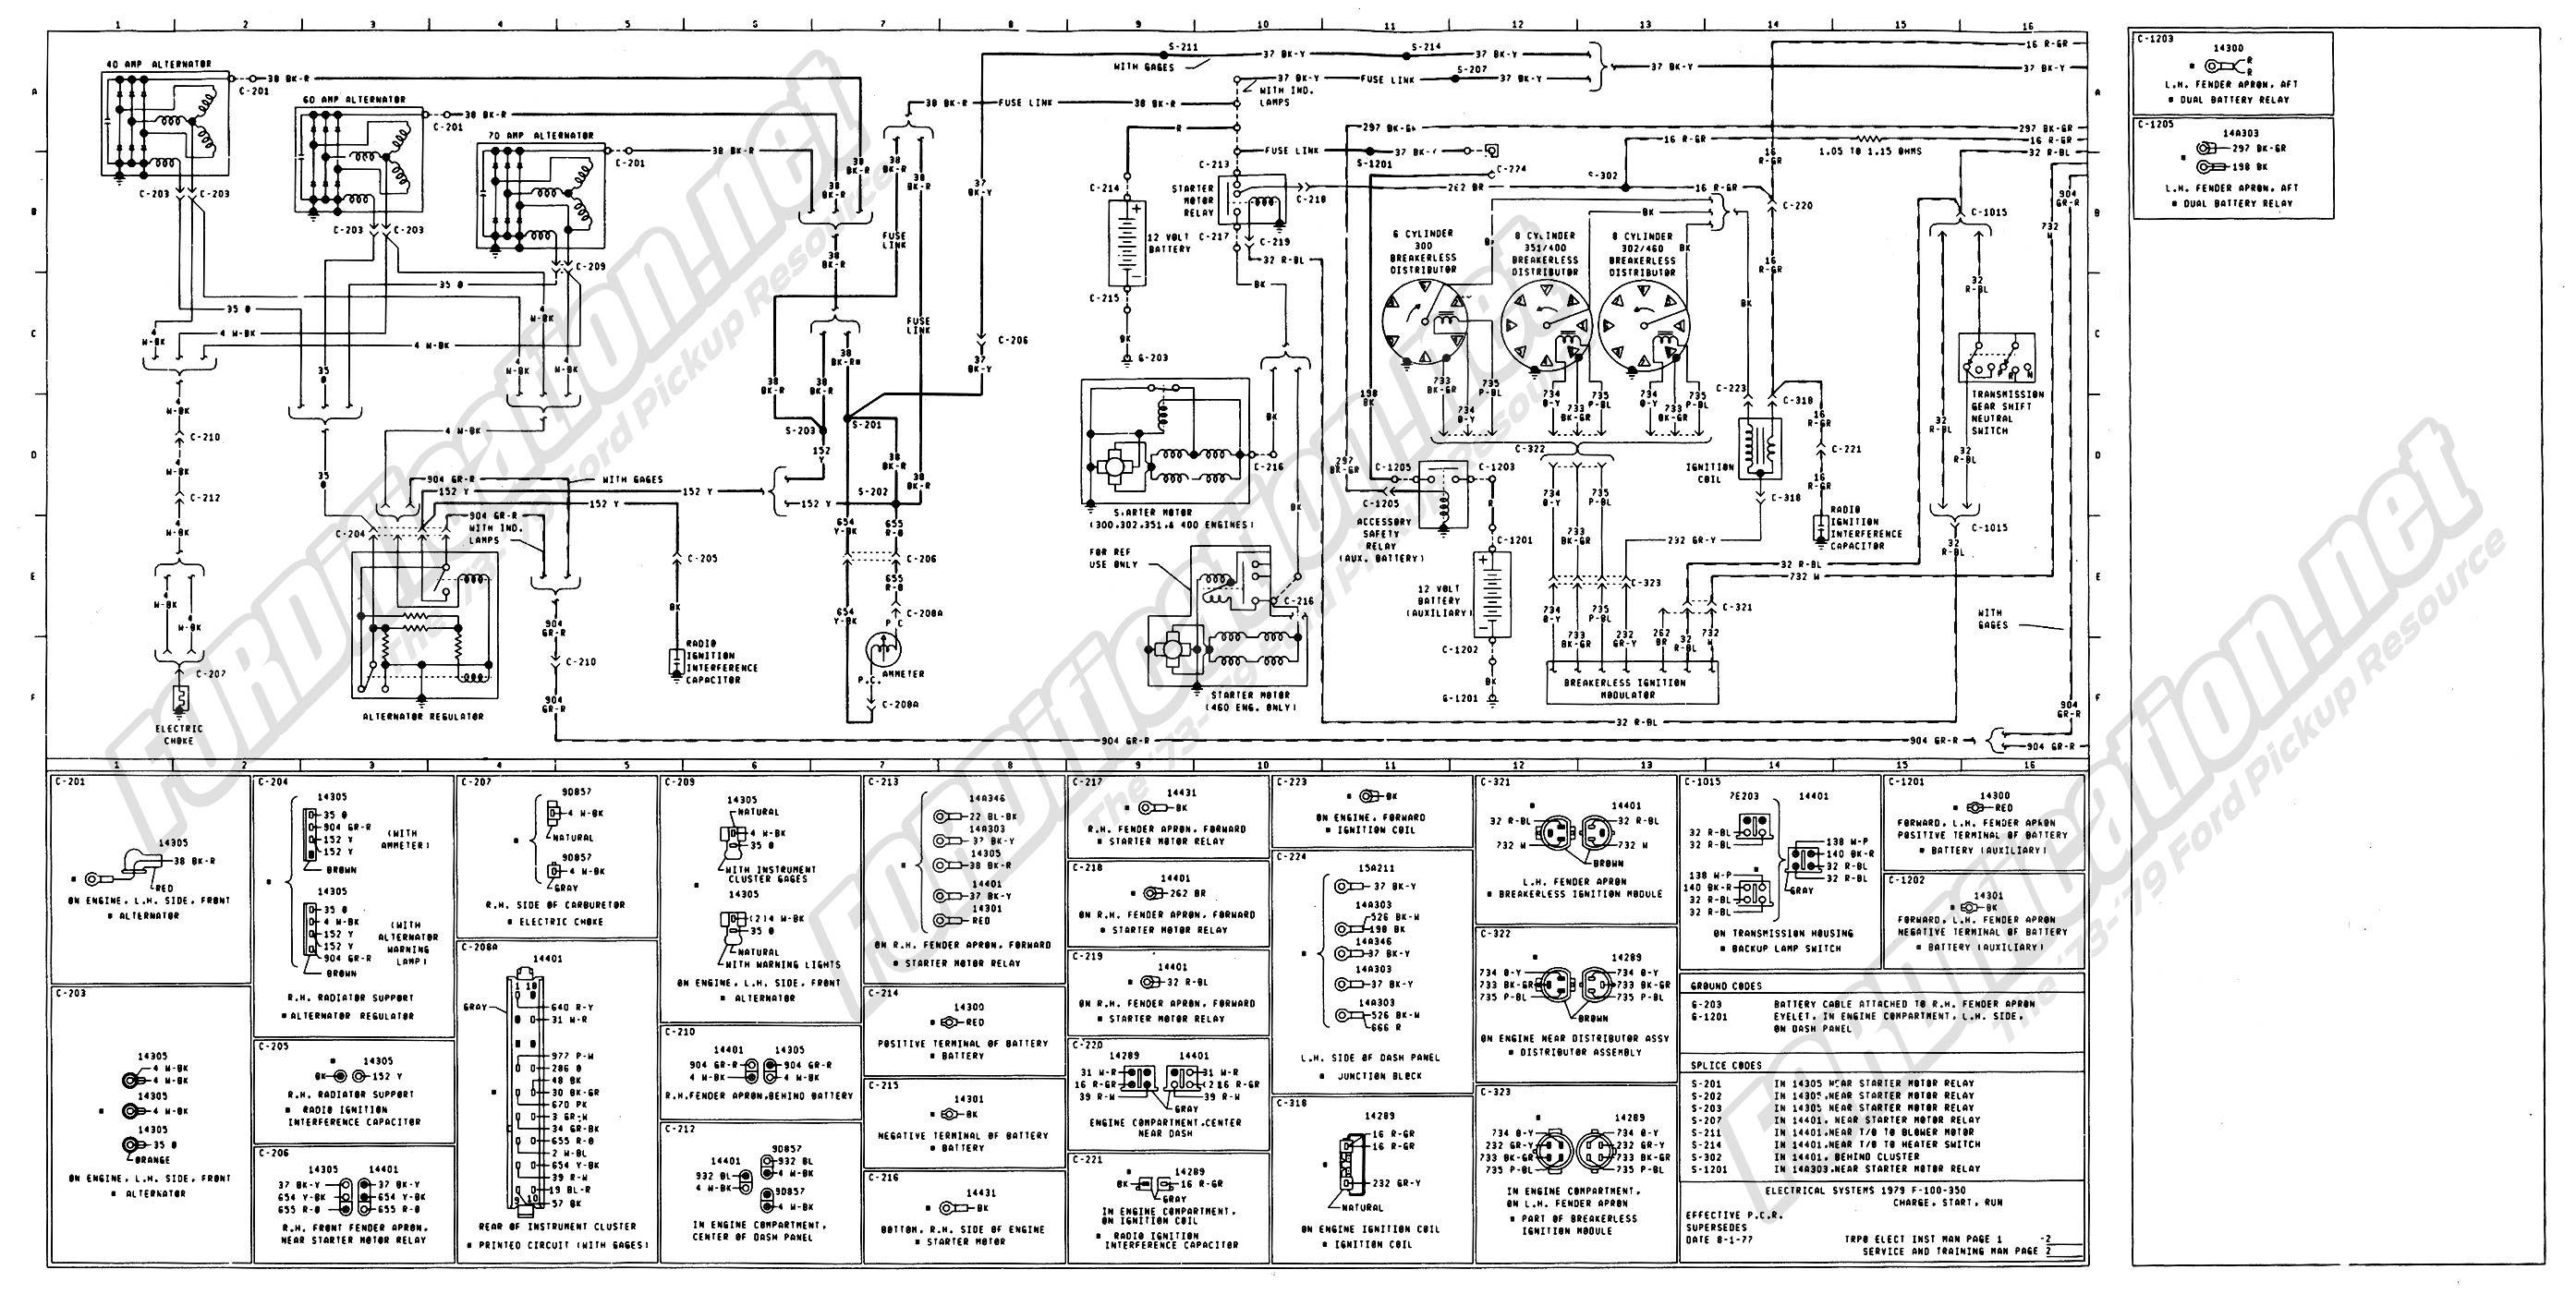 1978 Ford F 250 Heater Fan Wiring Diagram Trusted 1968 F250 1973 1979 Truck Diagrams Schematics Fordification Net Rh Engine 1993 Diesel